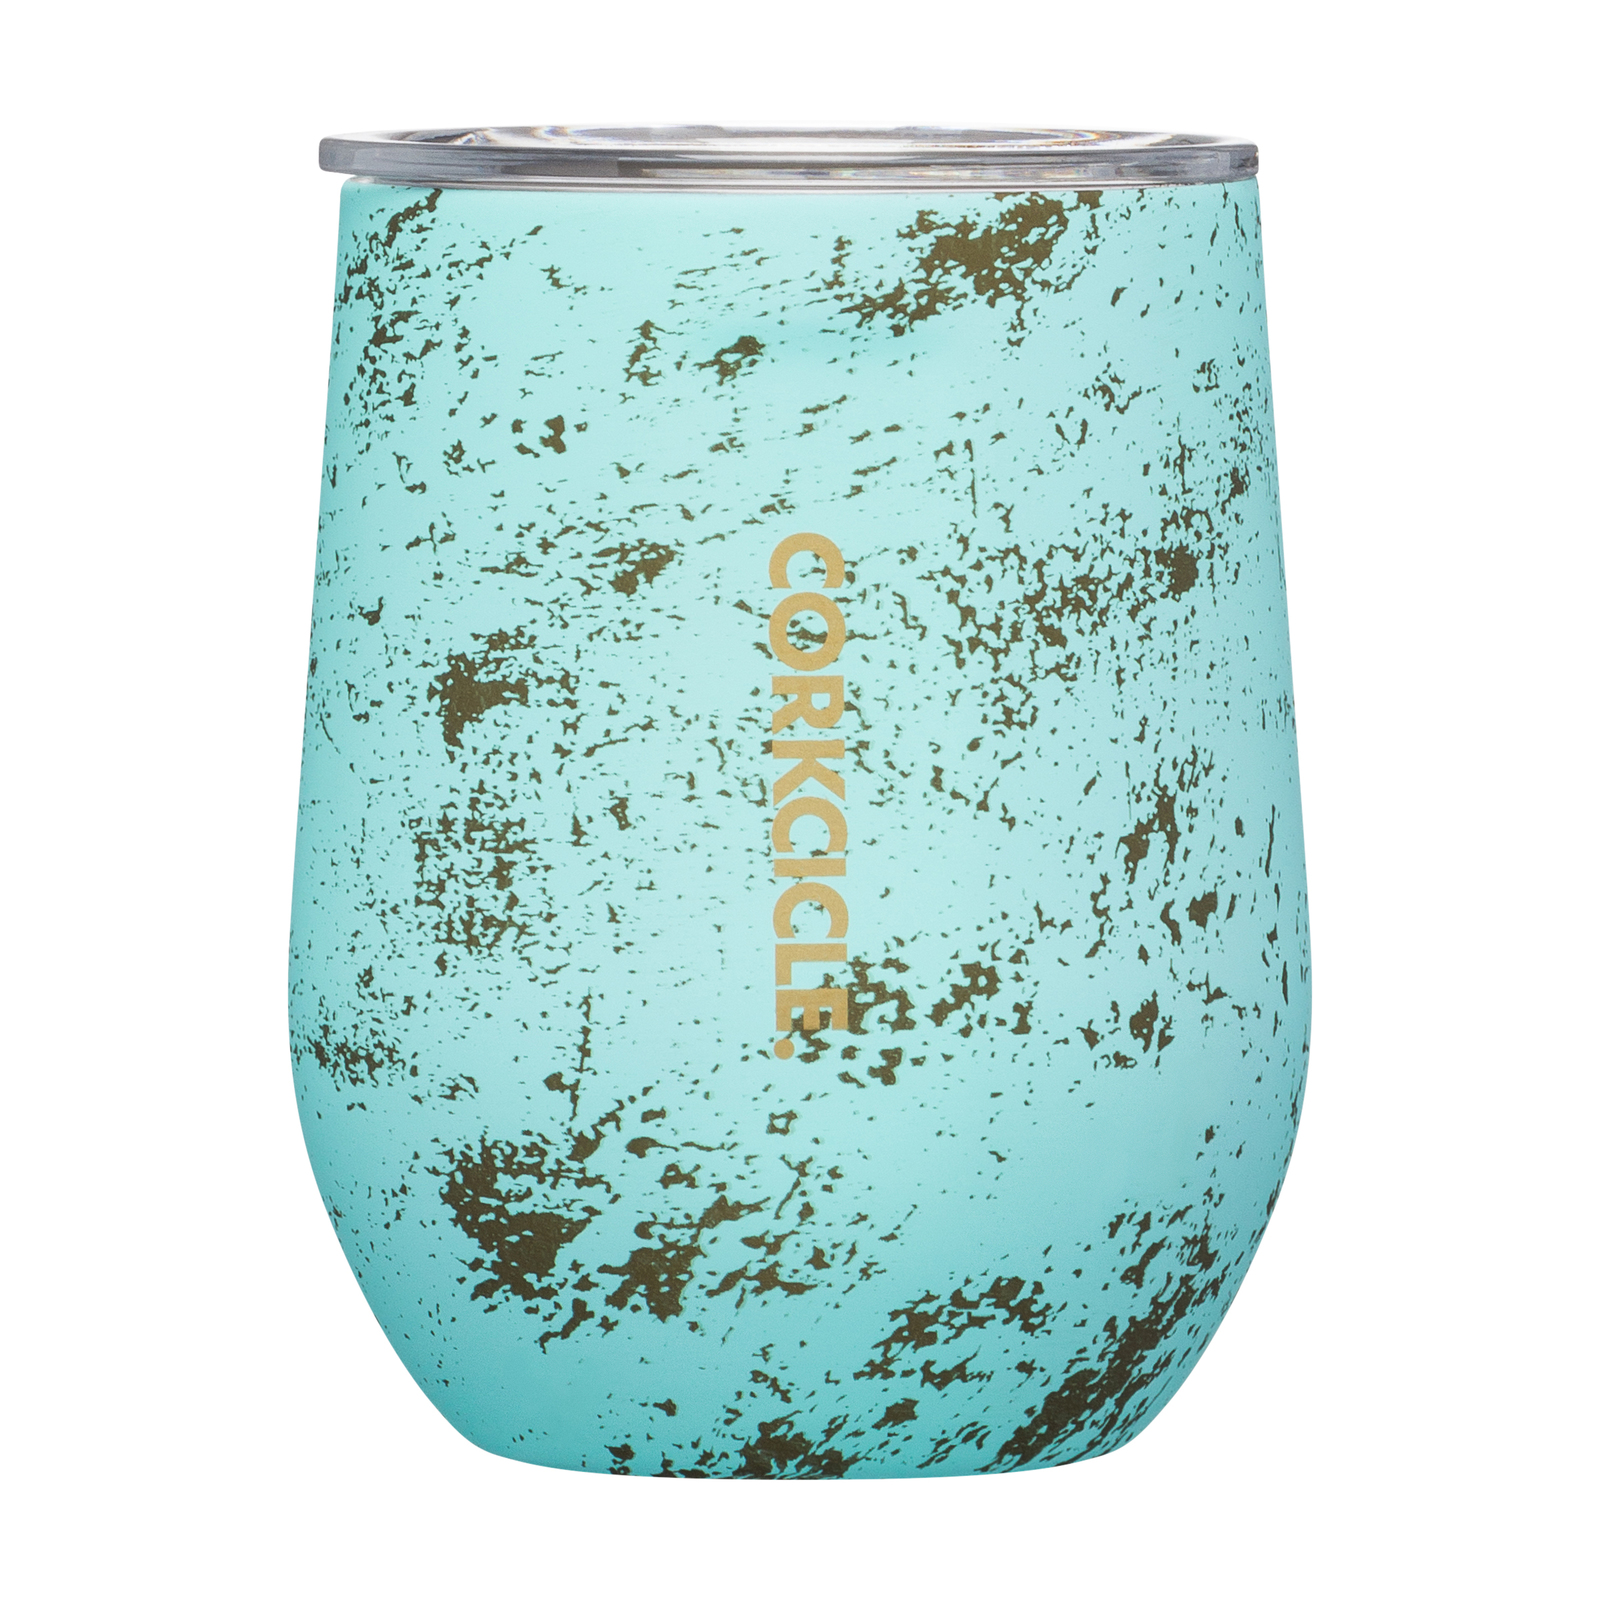 Corkcicle: Stemless Tumbler - Bali Blue (355ml) image